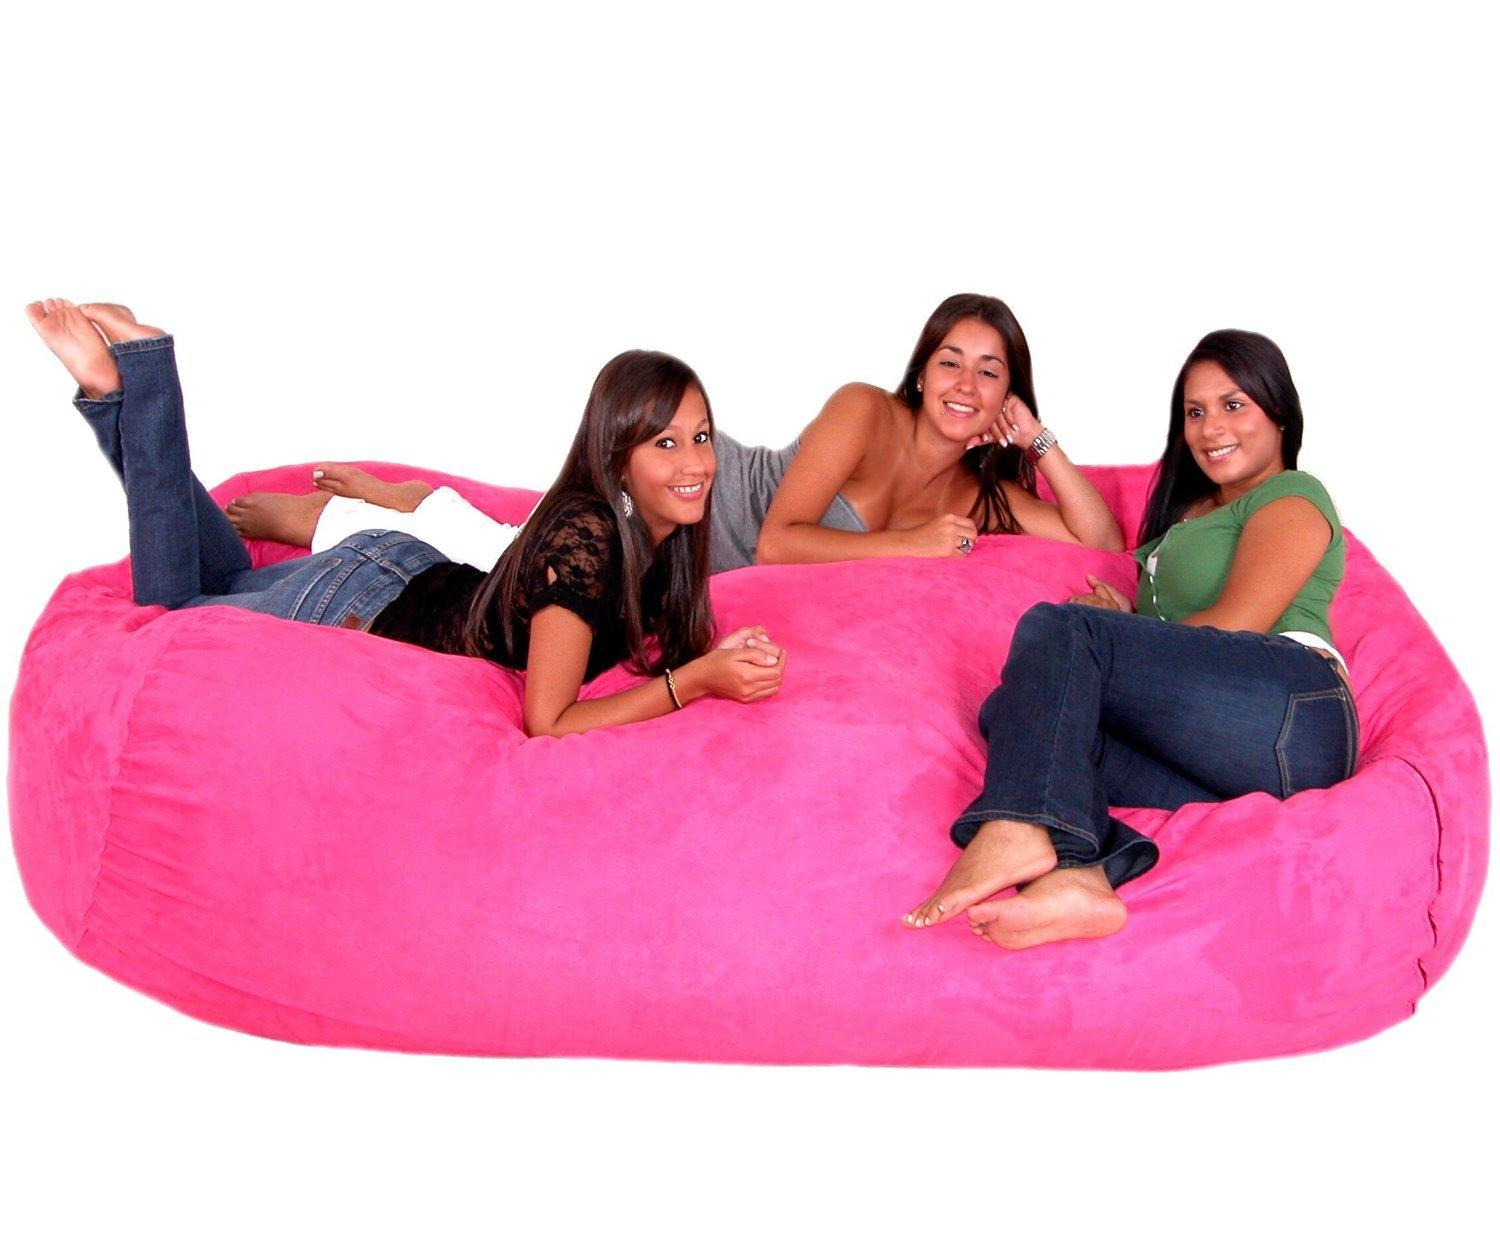 Cozy Sack 8-Feet Bean Bag Chair, X-Large, from Amazon